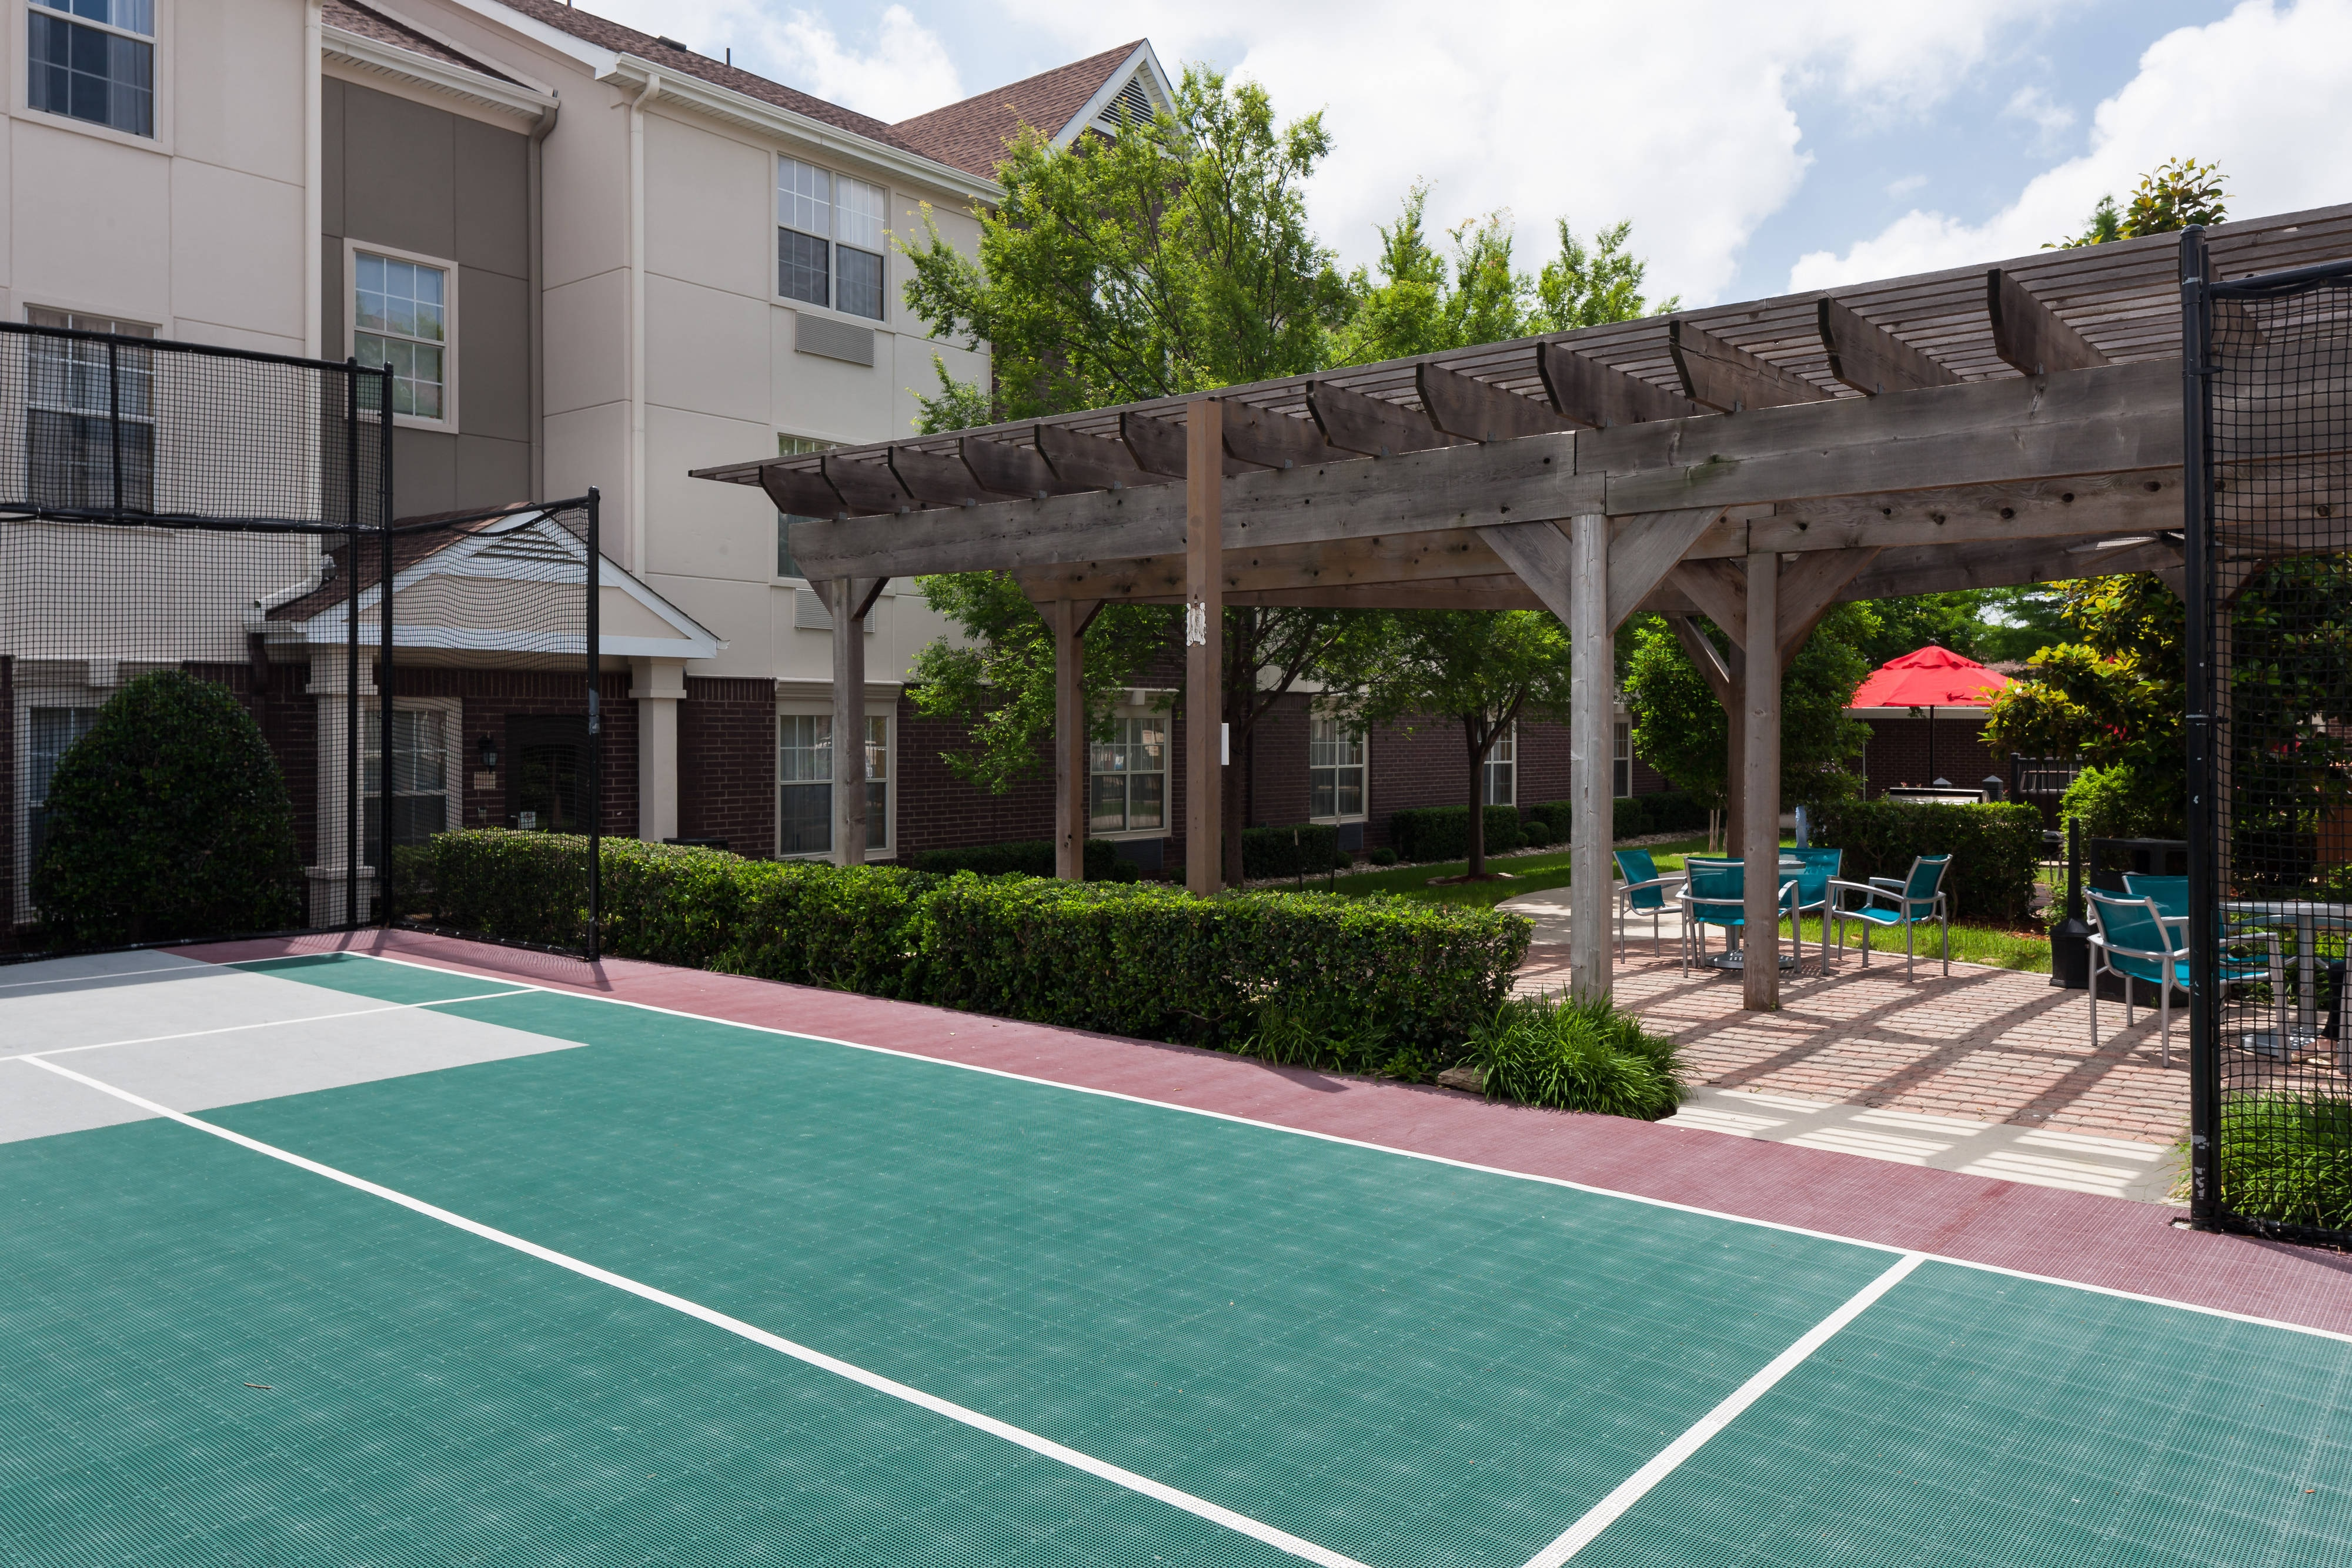 TownePlace Suites Arlington Outdoor Pool